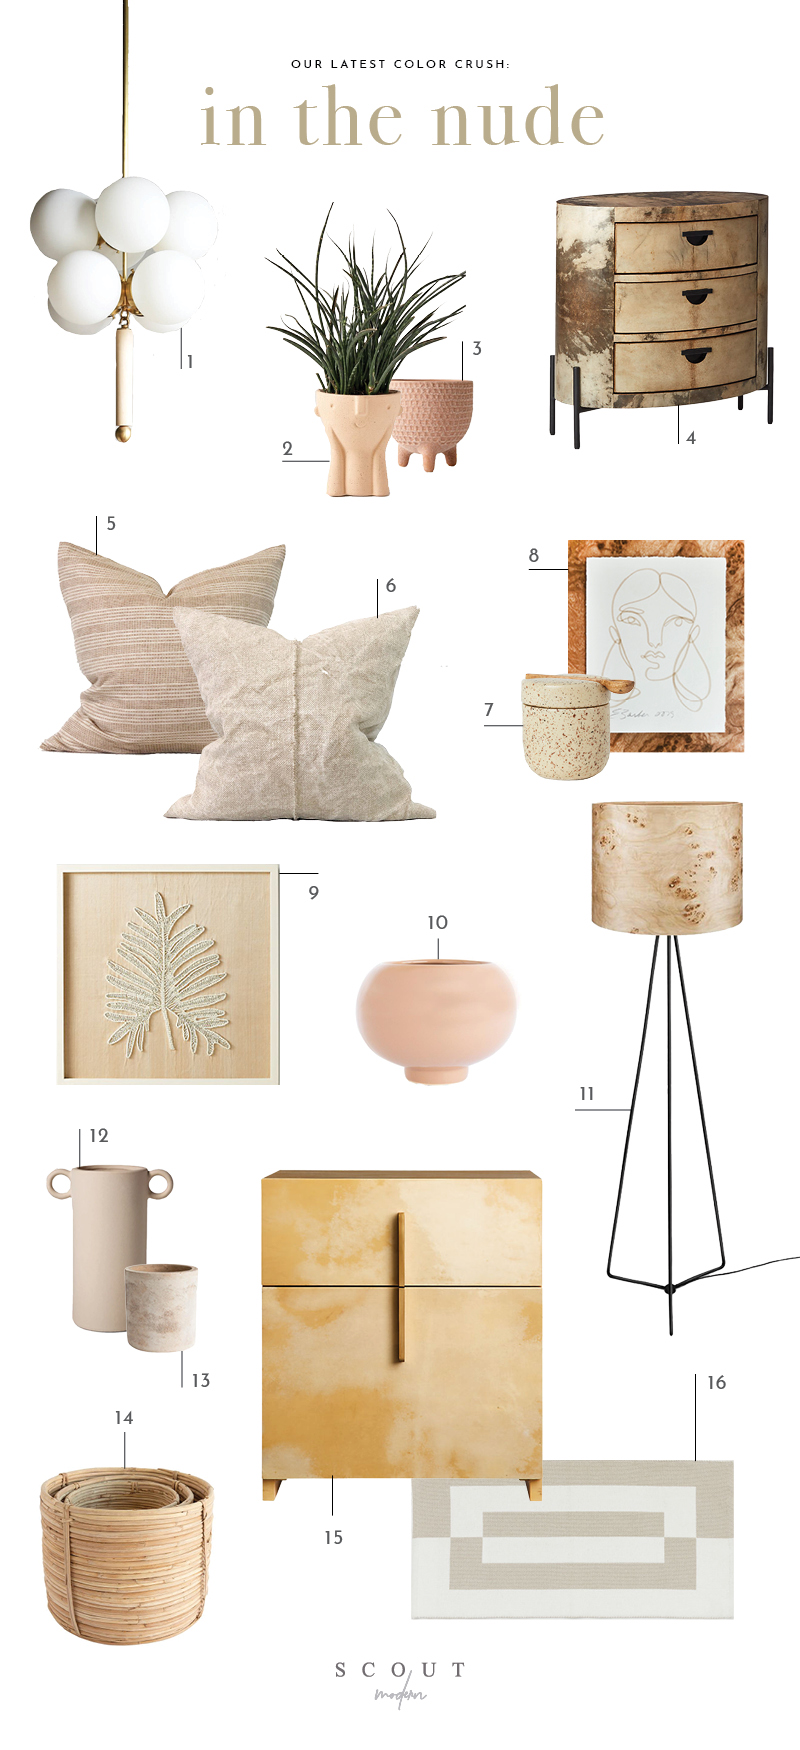 1.  Rondure Chandelier  | 2.  Hector Face Planter  | 3.  Textured Planter  | 4.  Folie Nightstand  | 5.  Woven Stripe Pillow  | 6.  Belgian Linen Pillow  | 7.  Small Jar with Lid  | 8.  Elissa Barber Print  | 9.  Beaded Wall Art  | 10.  Nude Flower Pot  | 11.  Burl Floor Lamp  | 12.  Cream Vase  | 13.  Stone Planter  | 14.  Rattan Round Baskets  | 15.  Chateau Vellum File Cabinet  | 16.  Patterned Rug